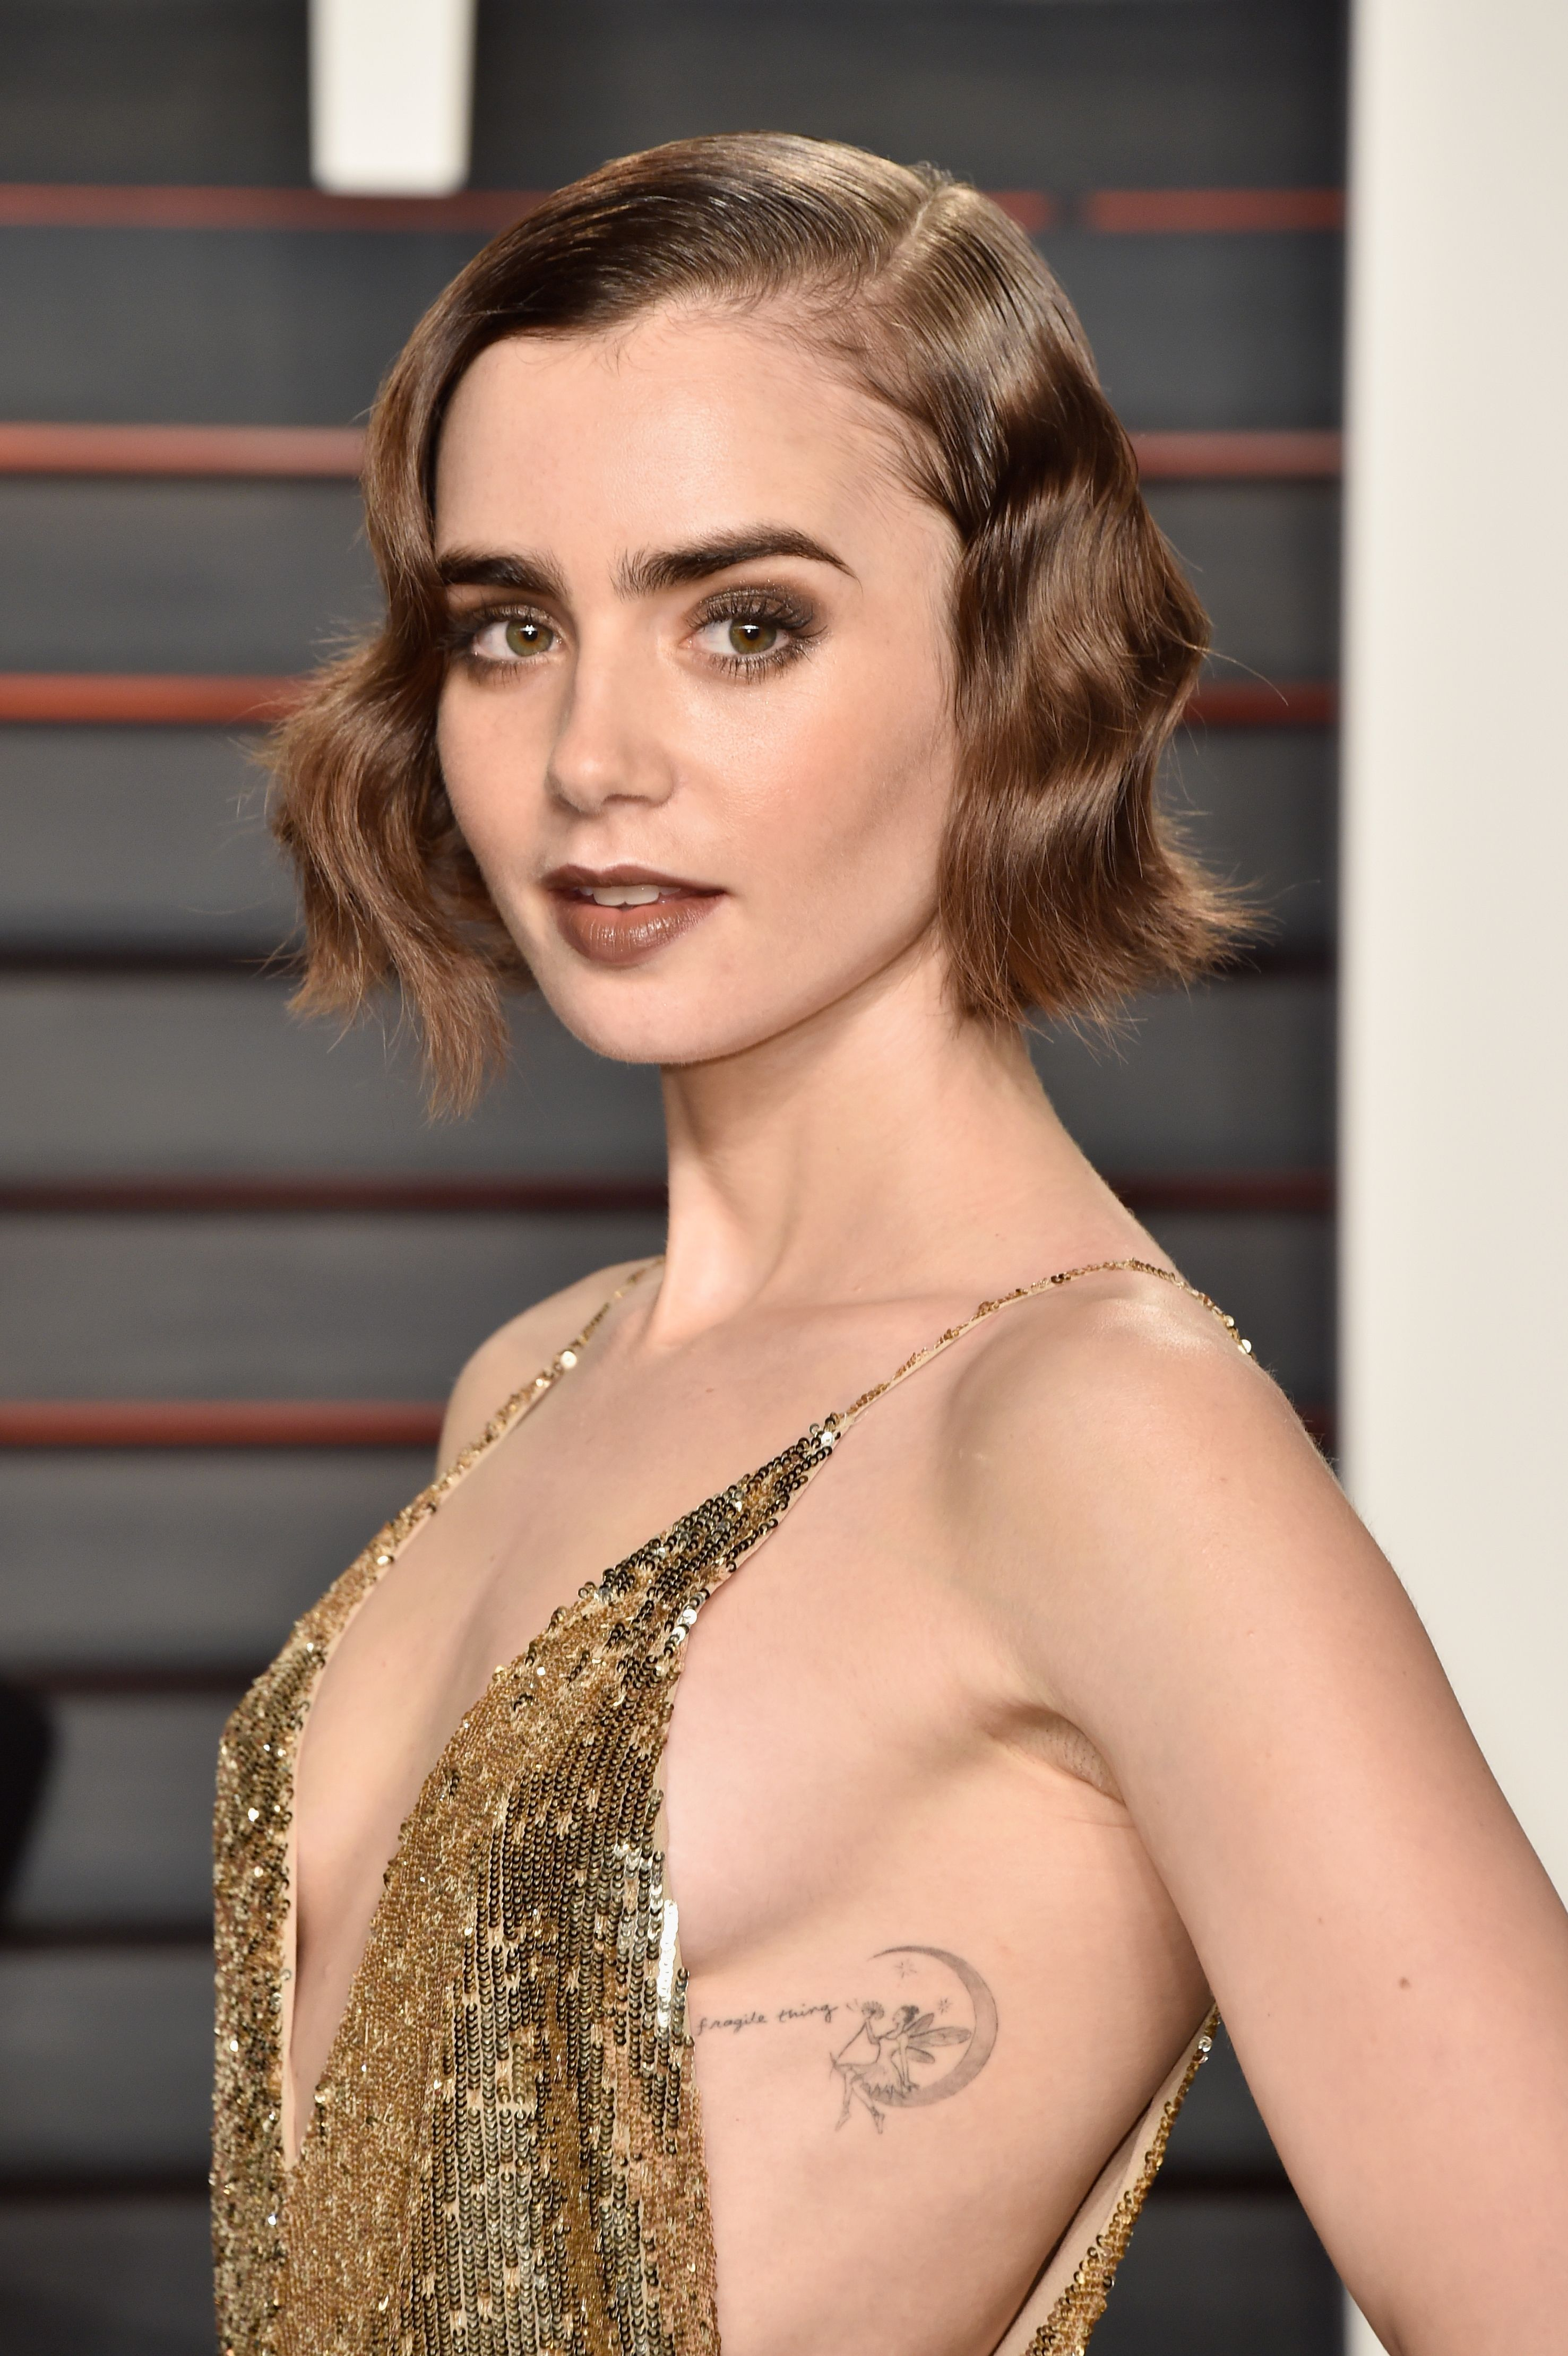 Lily Collins - Lily Collins Net Worth, Biography, Family, Movies, Boyfriends, Pictures&Wallpapers